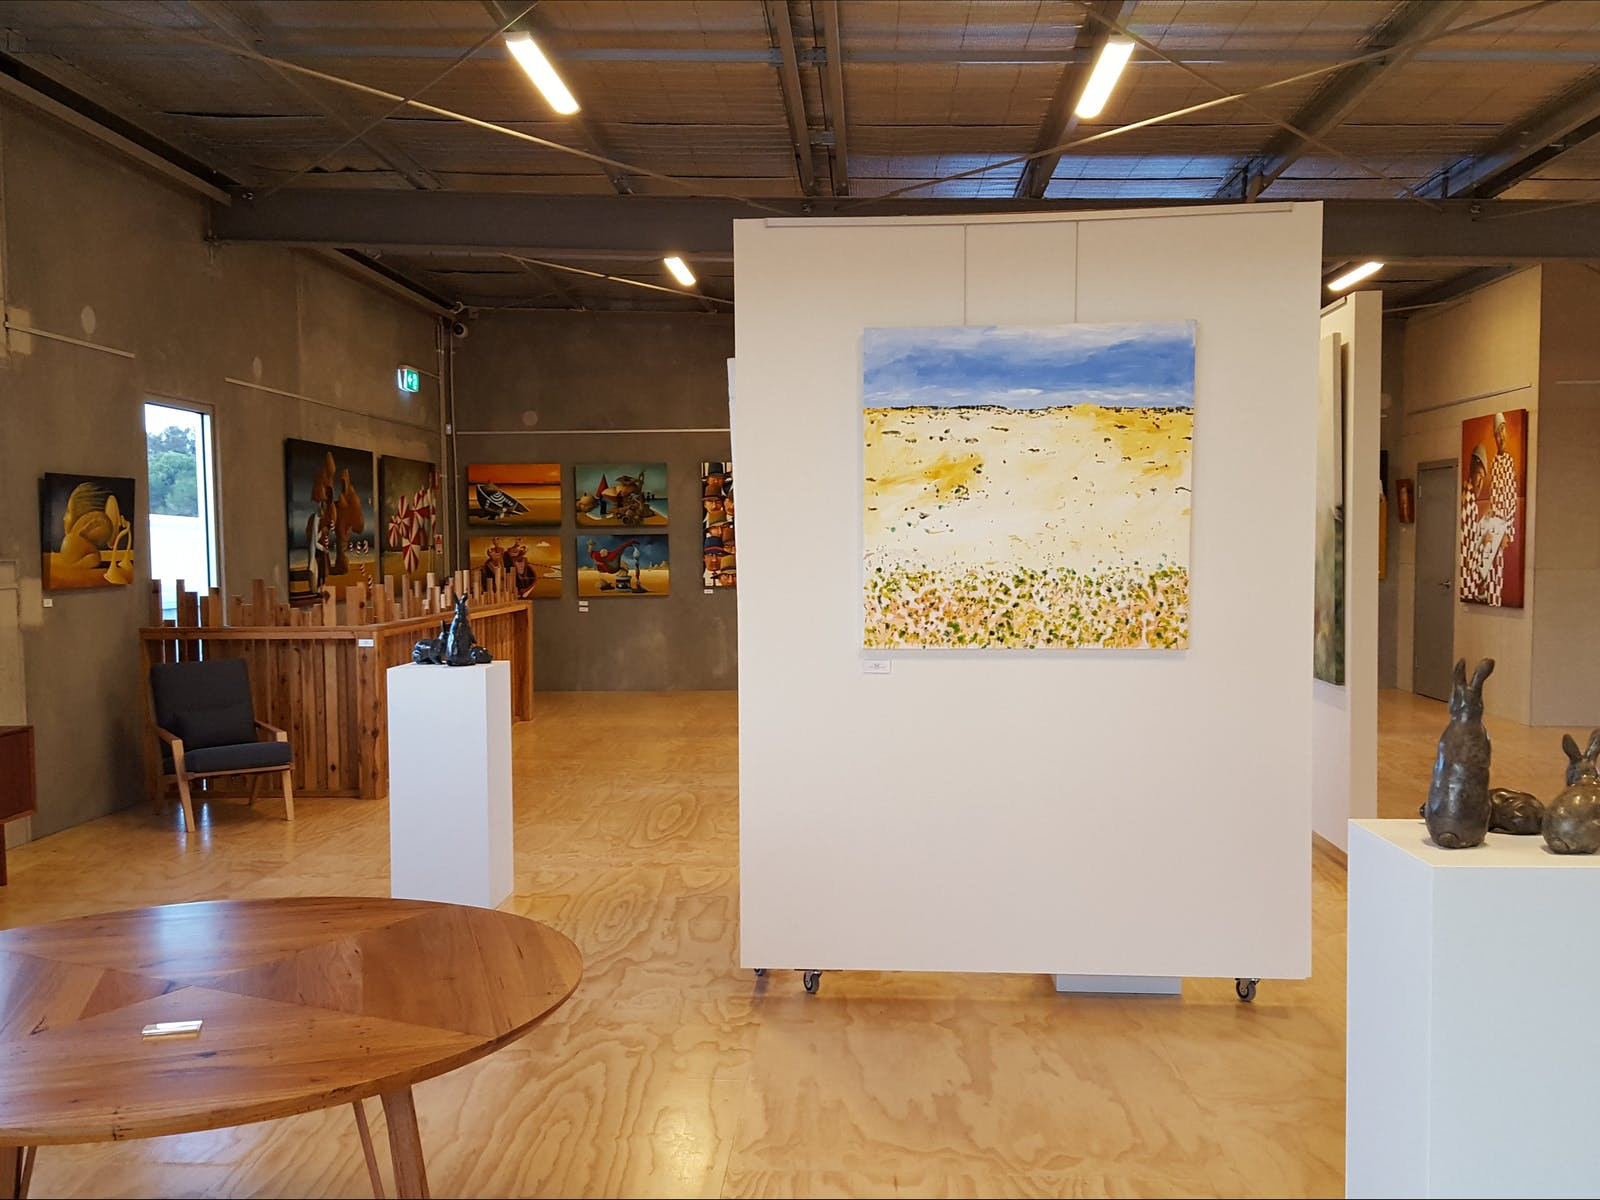 Various works on display upstairs at The Hive Gallery, showing sculpture, paintings and furniture.